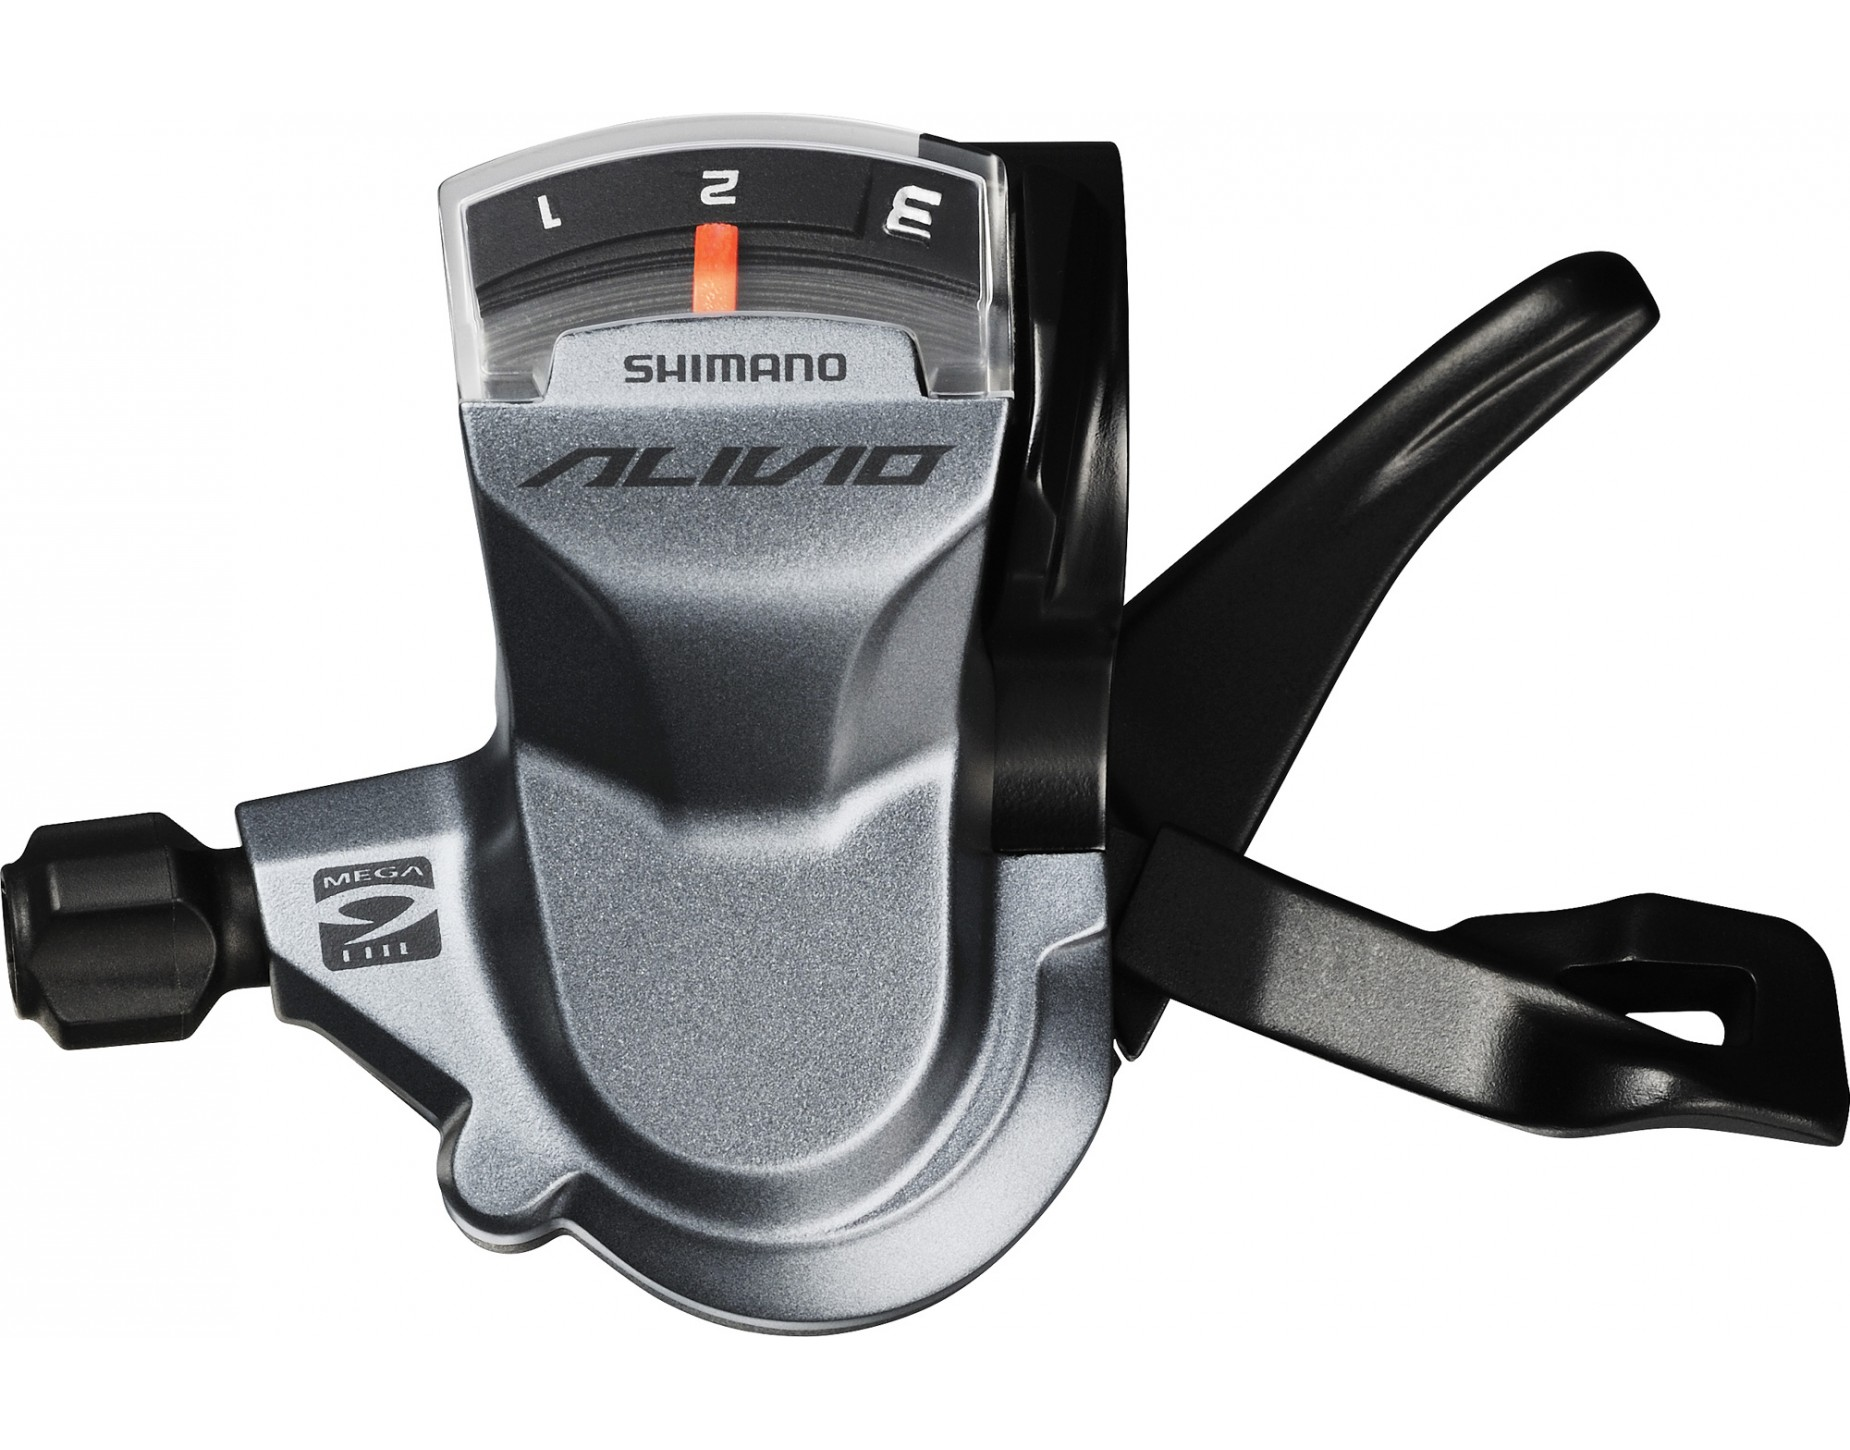 SHIMANO Alivio SL-M4000 Rapidfire shift levers – everything you need! | ROSE Bikes